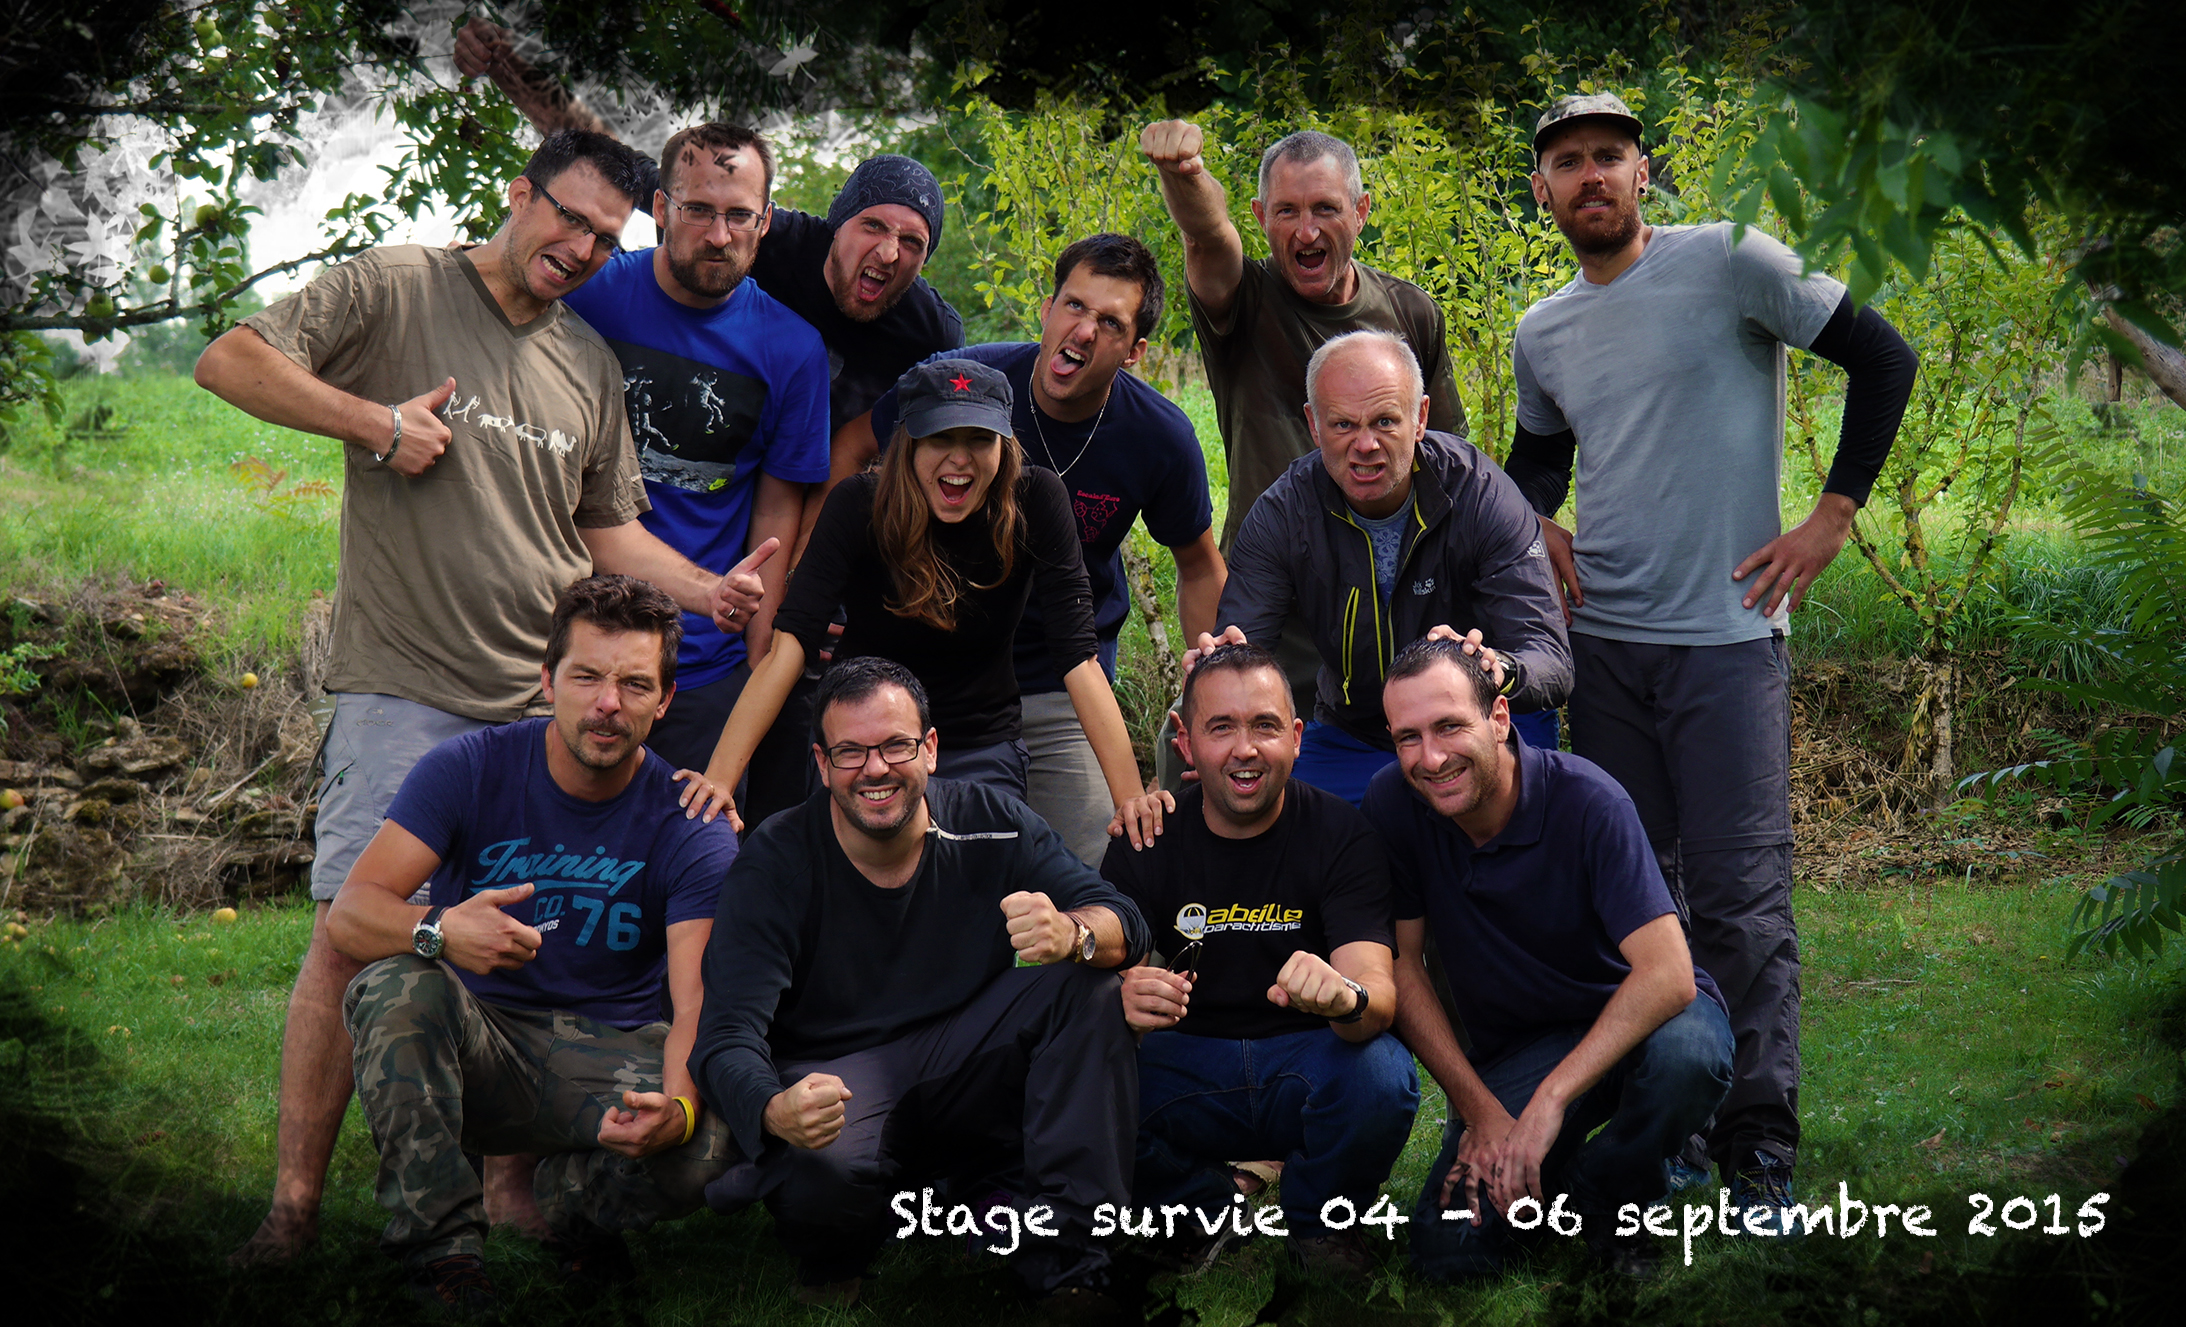 groupe 04-06 septembre 2015.jpg